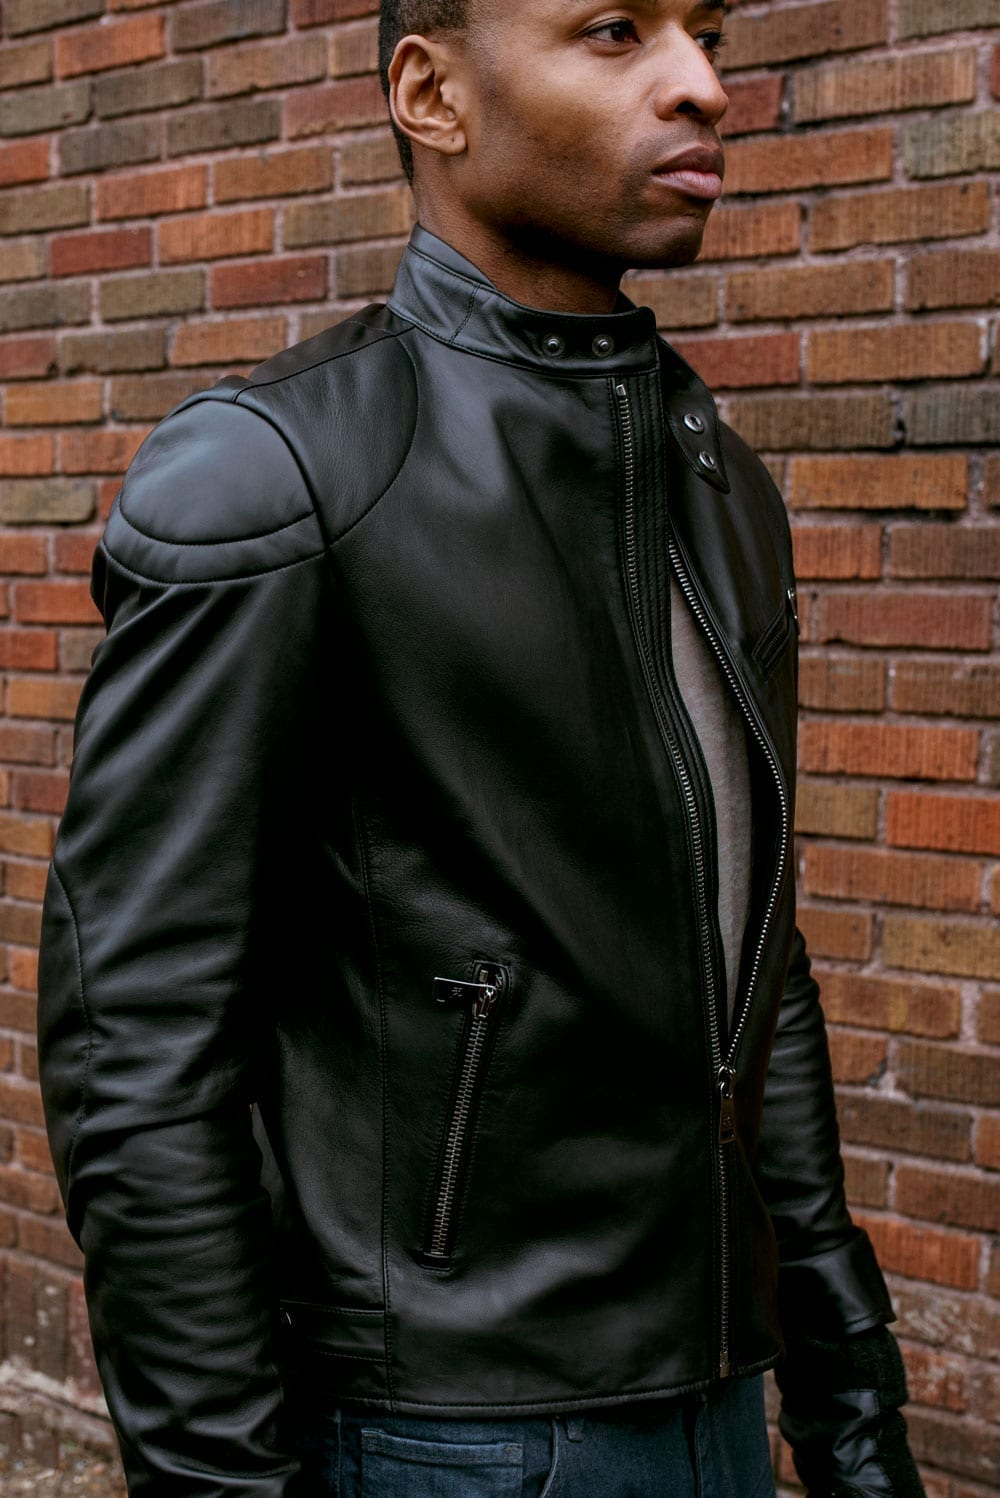 Cafe Racer style, men's jacket, Ralph Lauren, black leather